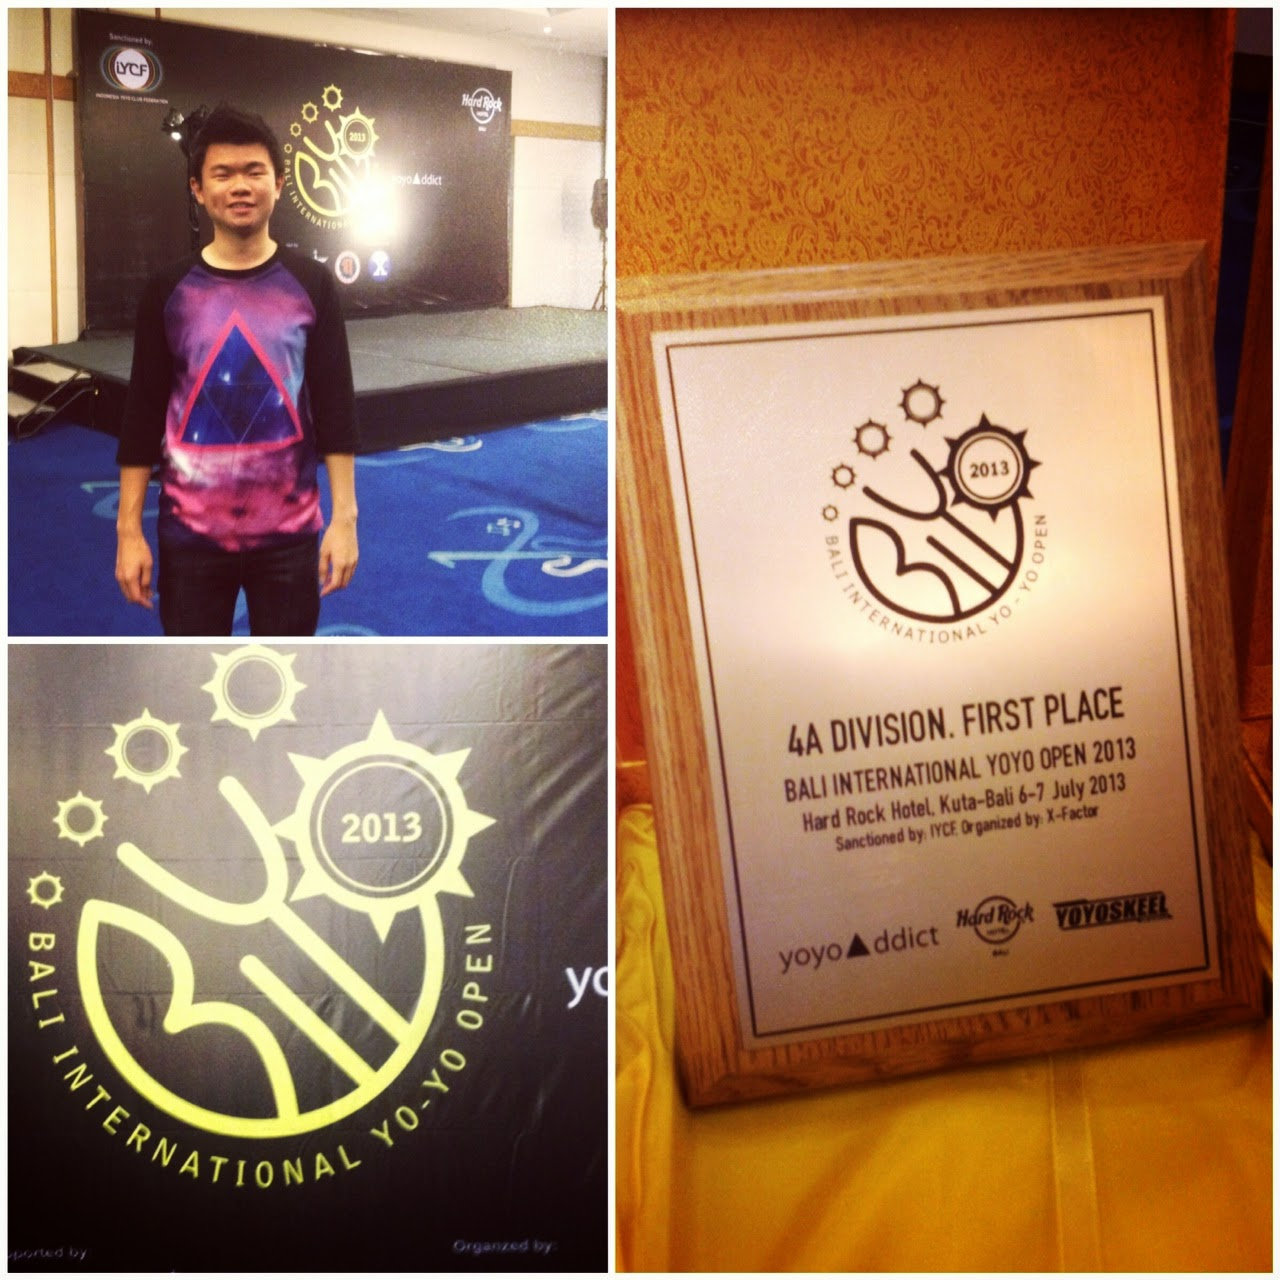 WON 4A in BALI INTERNATIONAL YOYO OPEN 2013